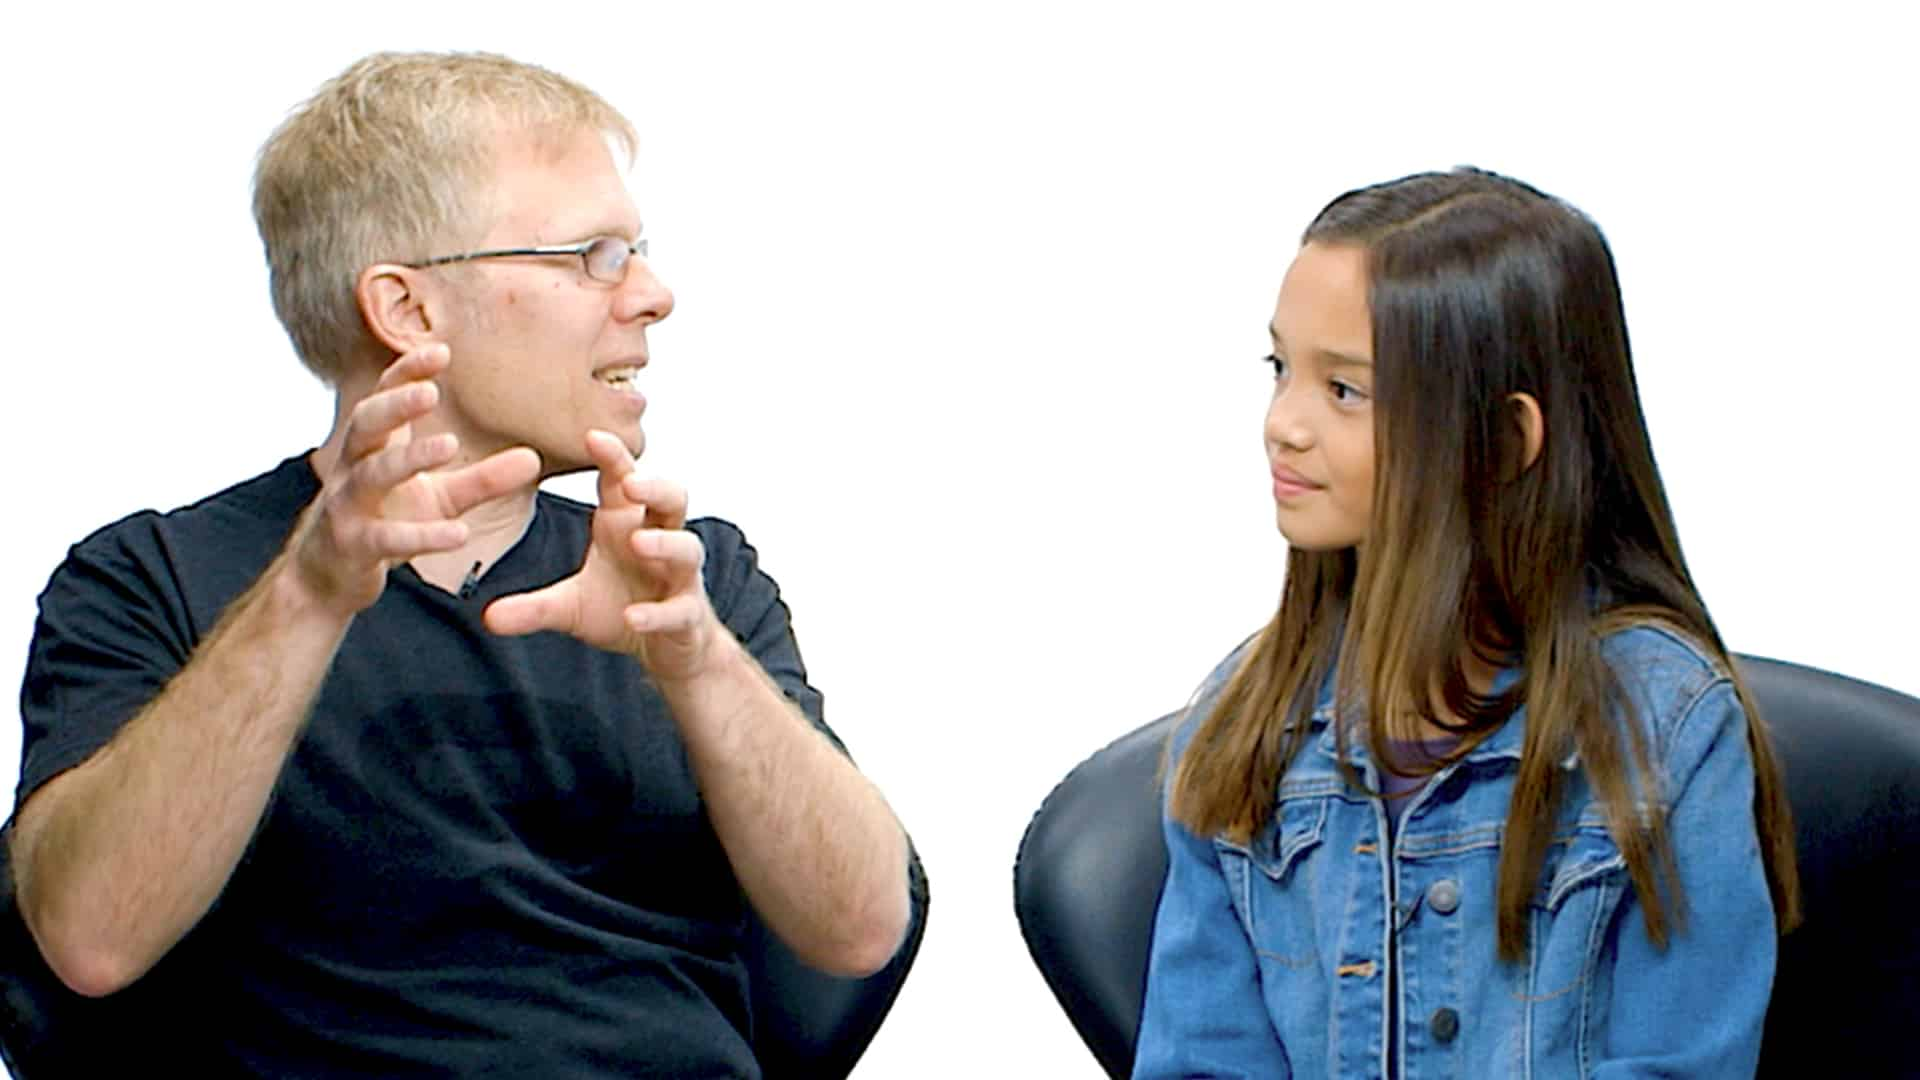 John Carmack Explains Virtual Reality – from the Child to the Expert